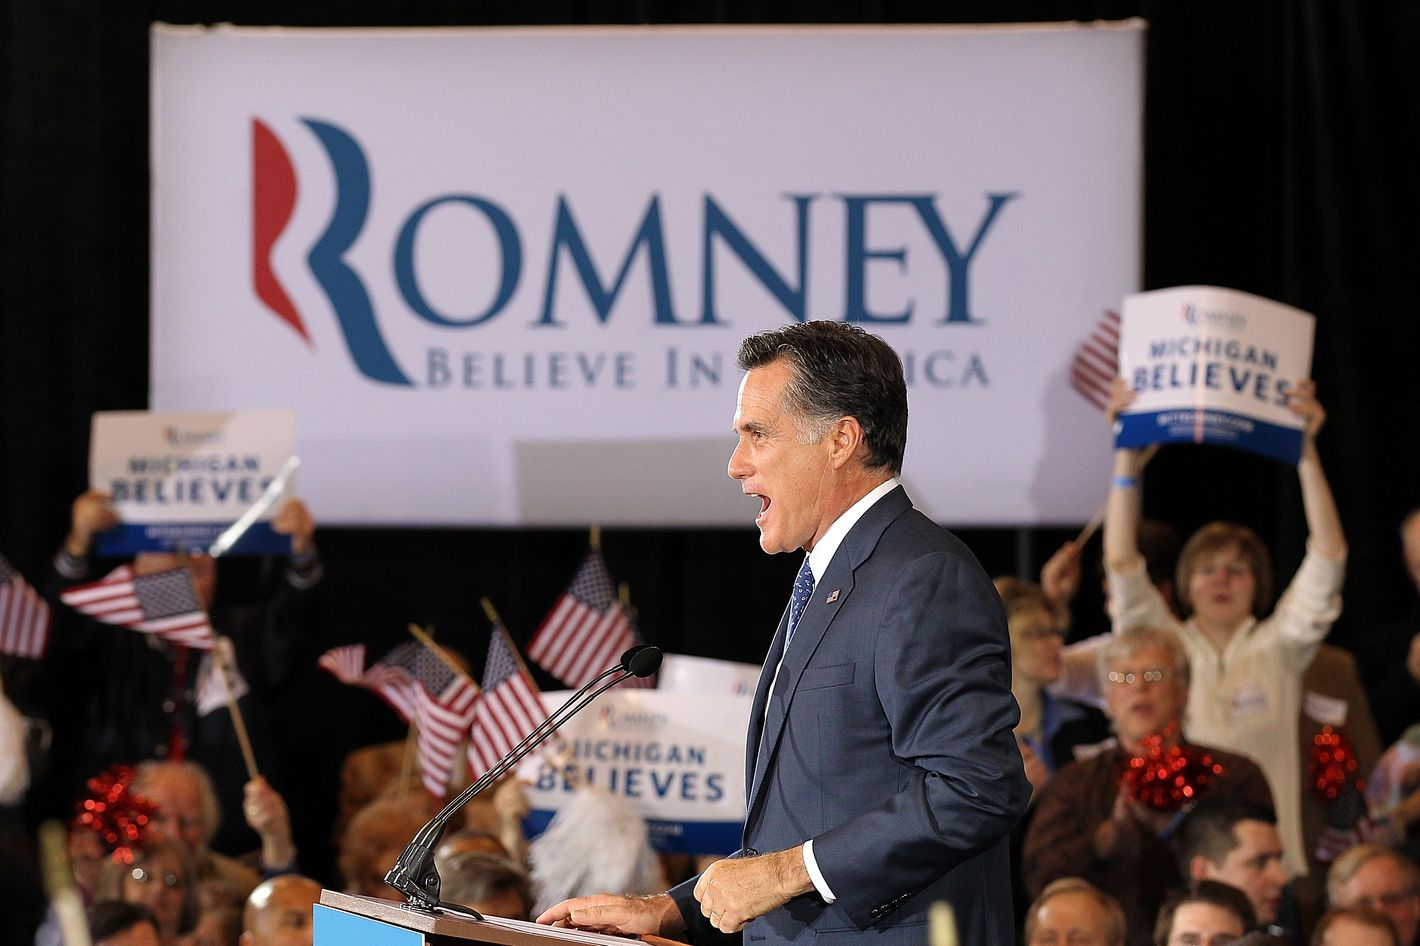 NOVI, MI - FEBRUARY 28:  Republican presidential candidate and former Massachussetts Gov. Mitt Romney speaks during a primary night gathering at the Suburban Collections Showplace on February 28, 2012 in Novi, Michigan. Romney celebrated primary victories in Arizona and Michigan.  (Photo by Justin Sullivan/Getty Images)